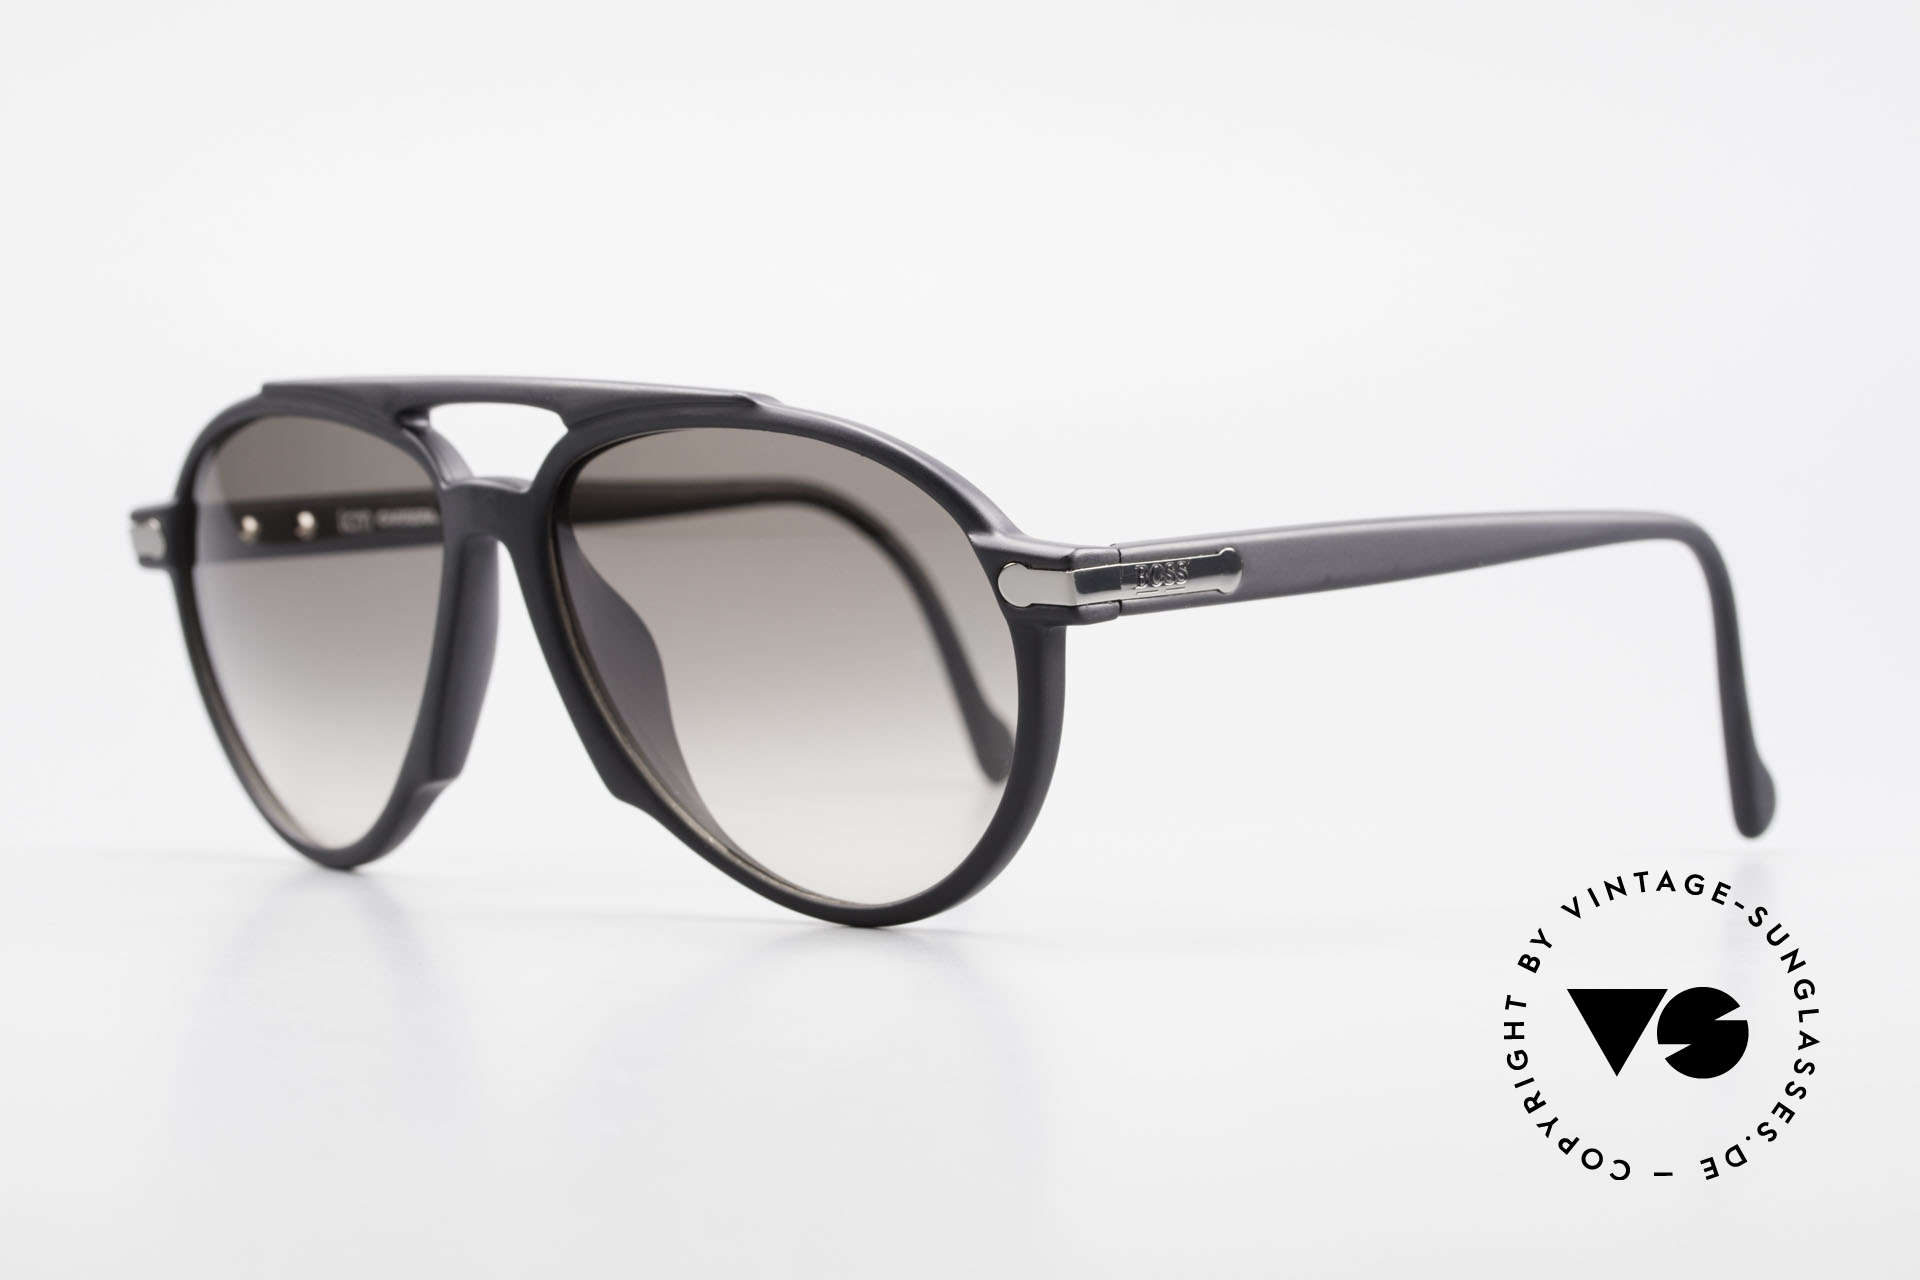 BOSS 5150 Vintage 90's Aviator Shades, cooperation between BOSS & Carrera, back then, Made for Men and Women